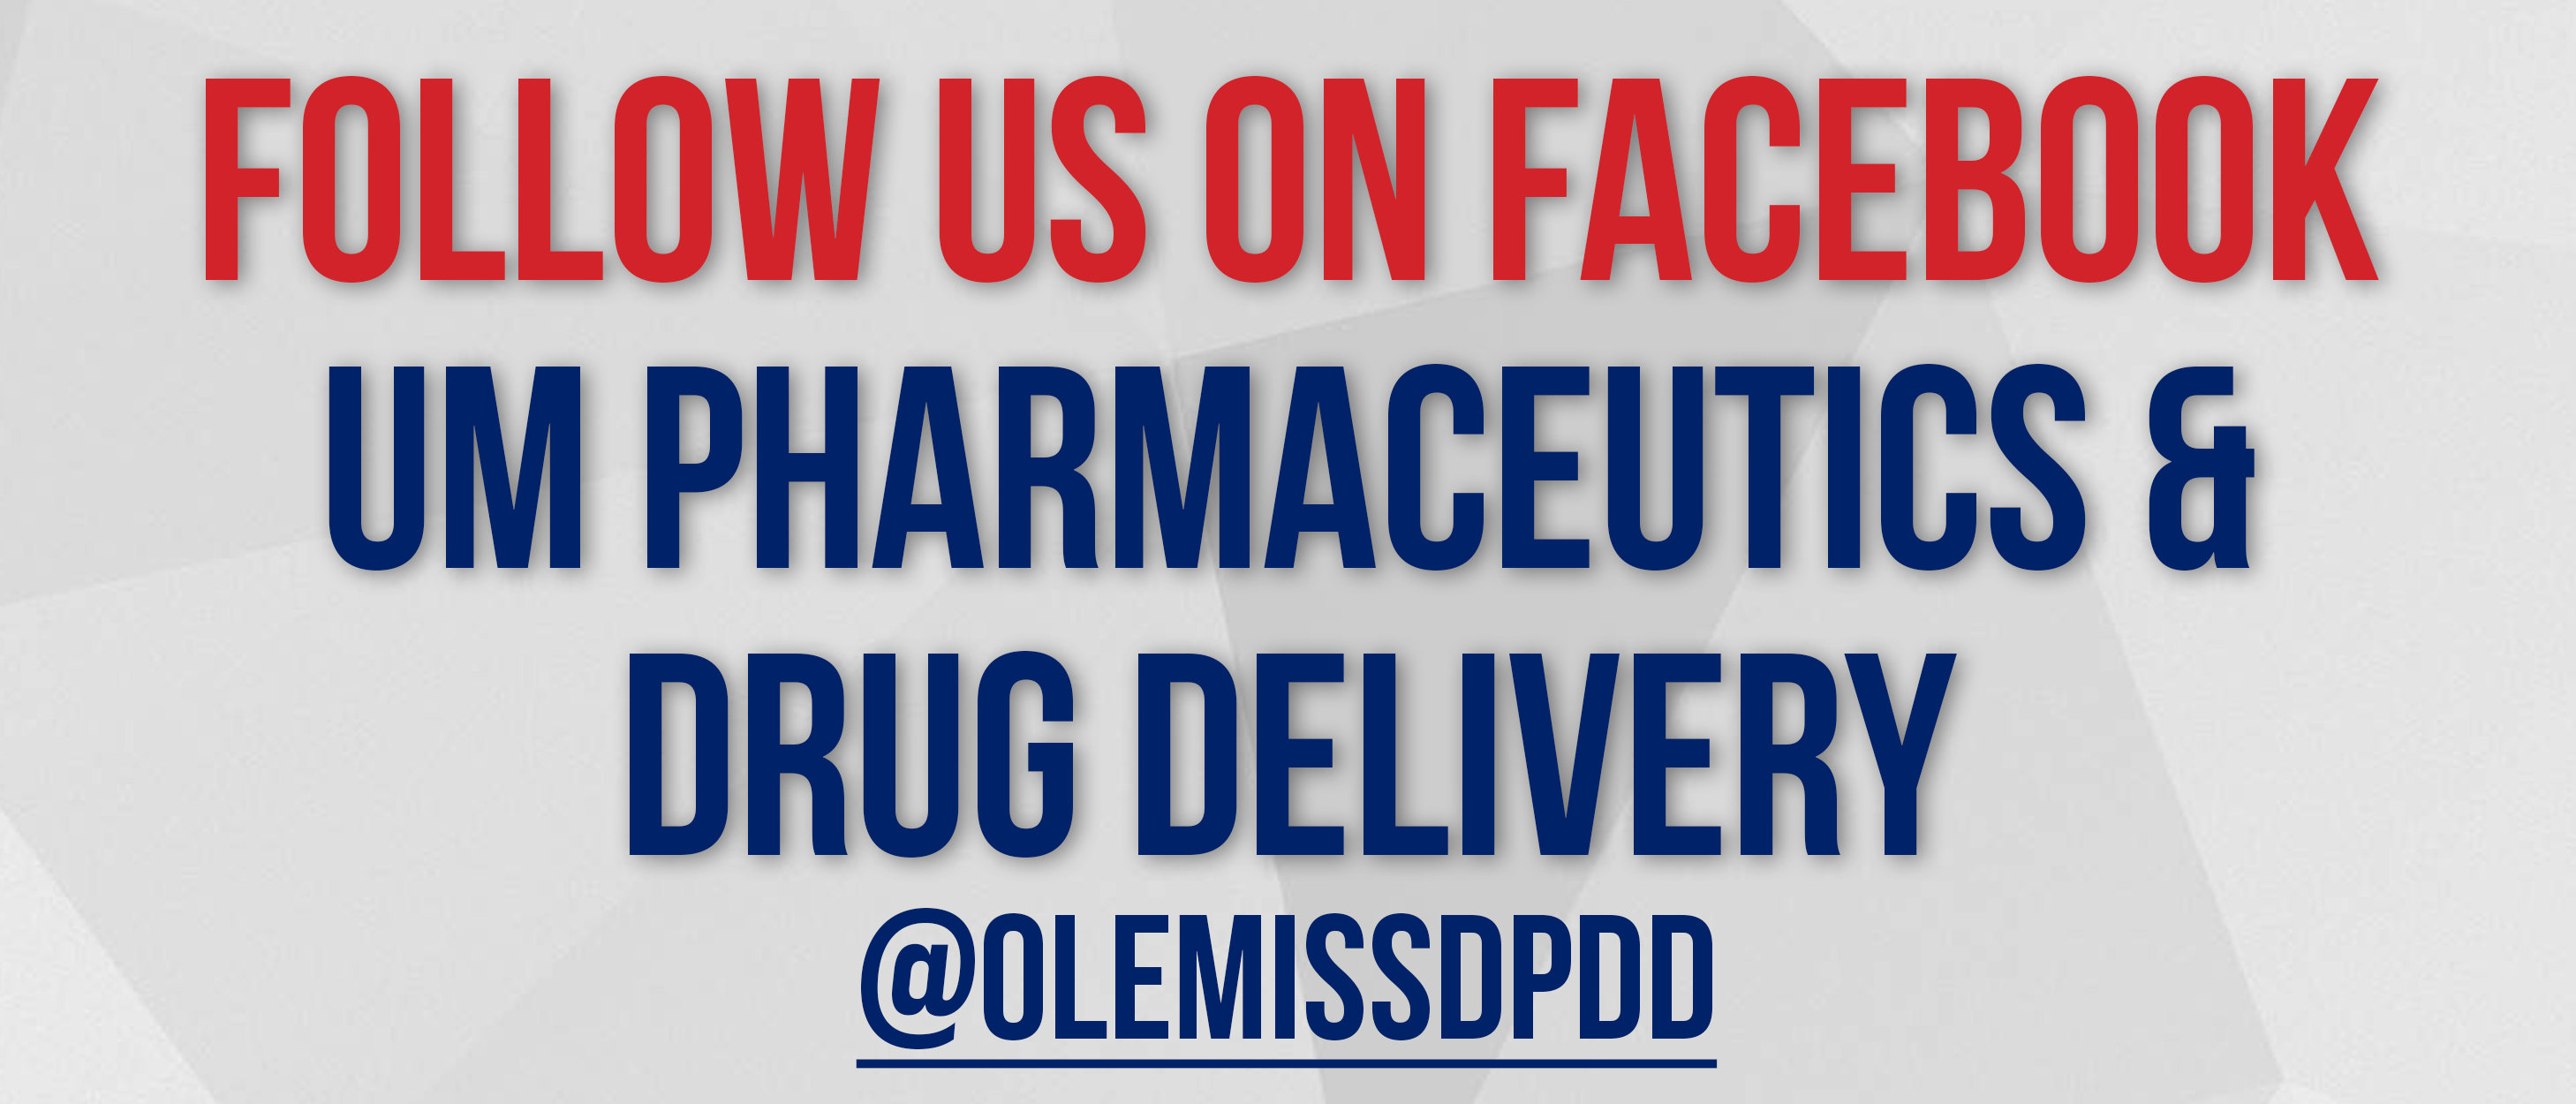 "Graphic with text ""Follow us on Facebook, @olemissdpdd"""